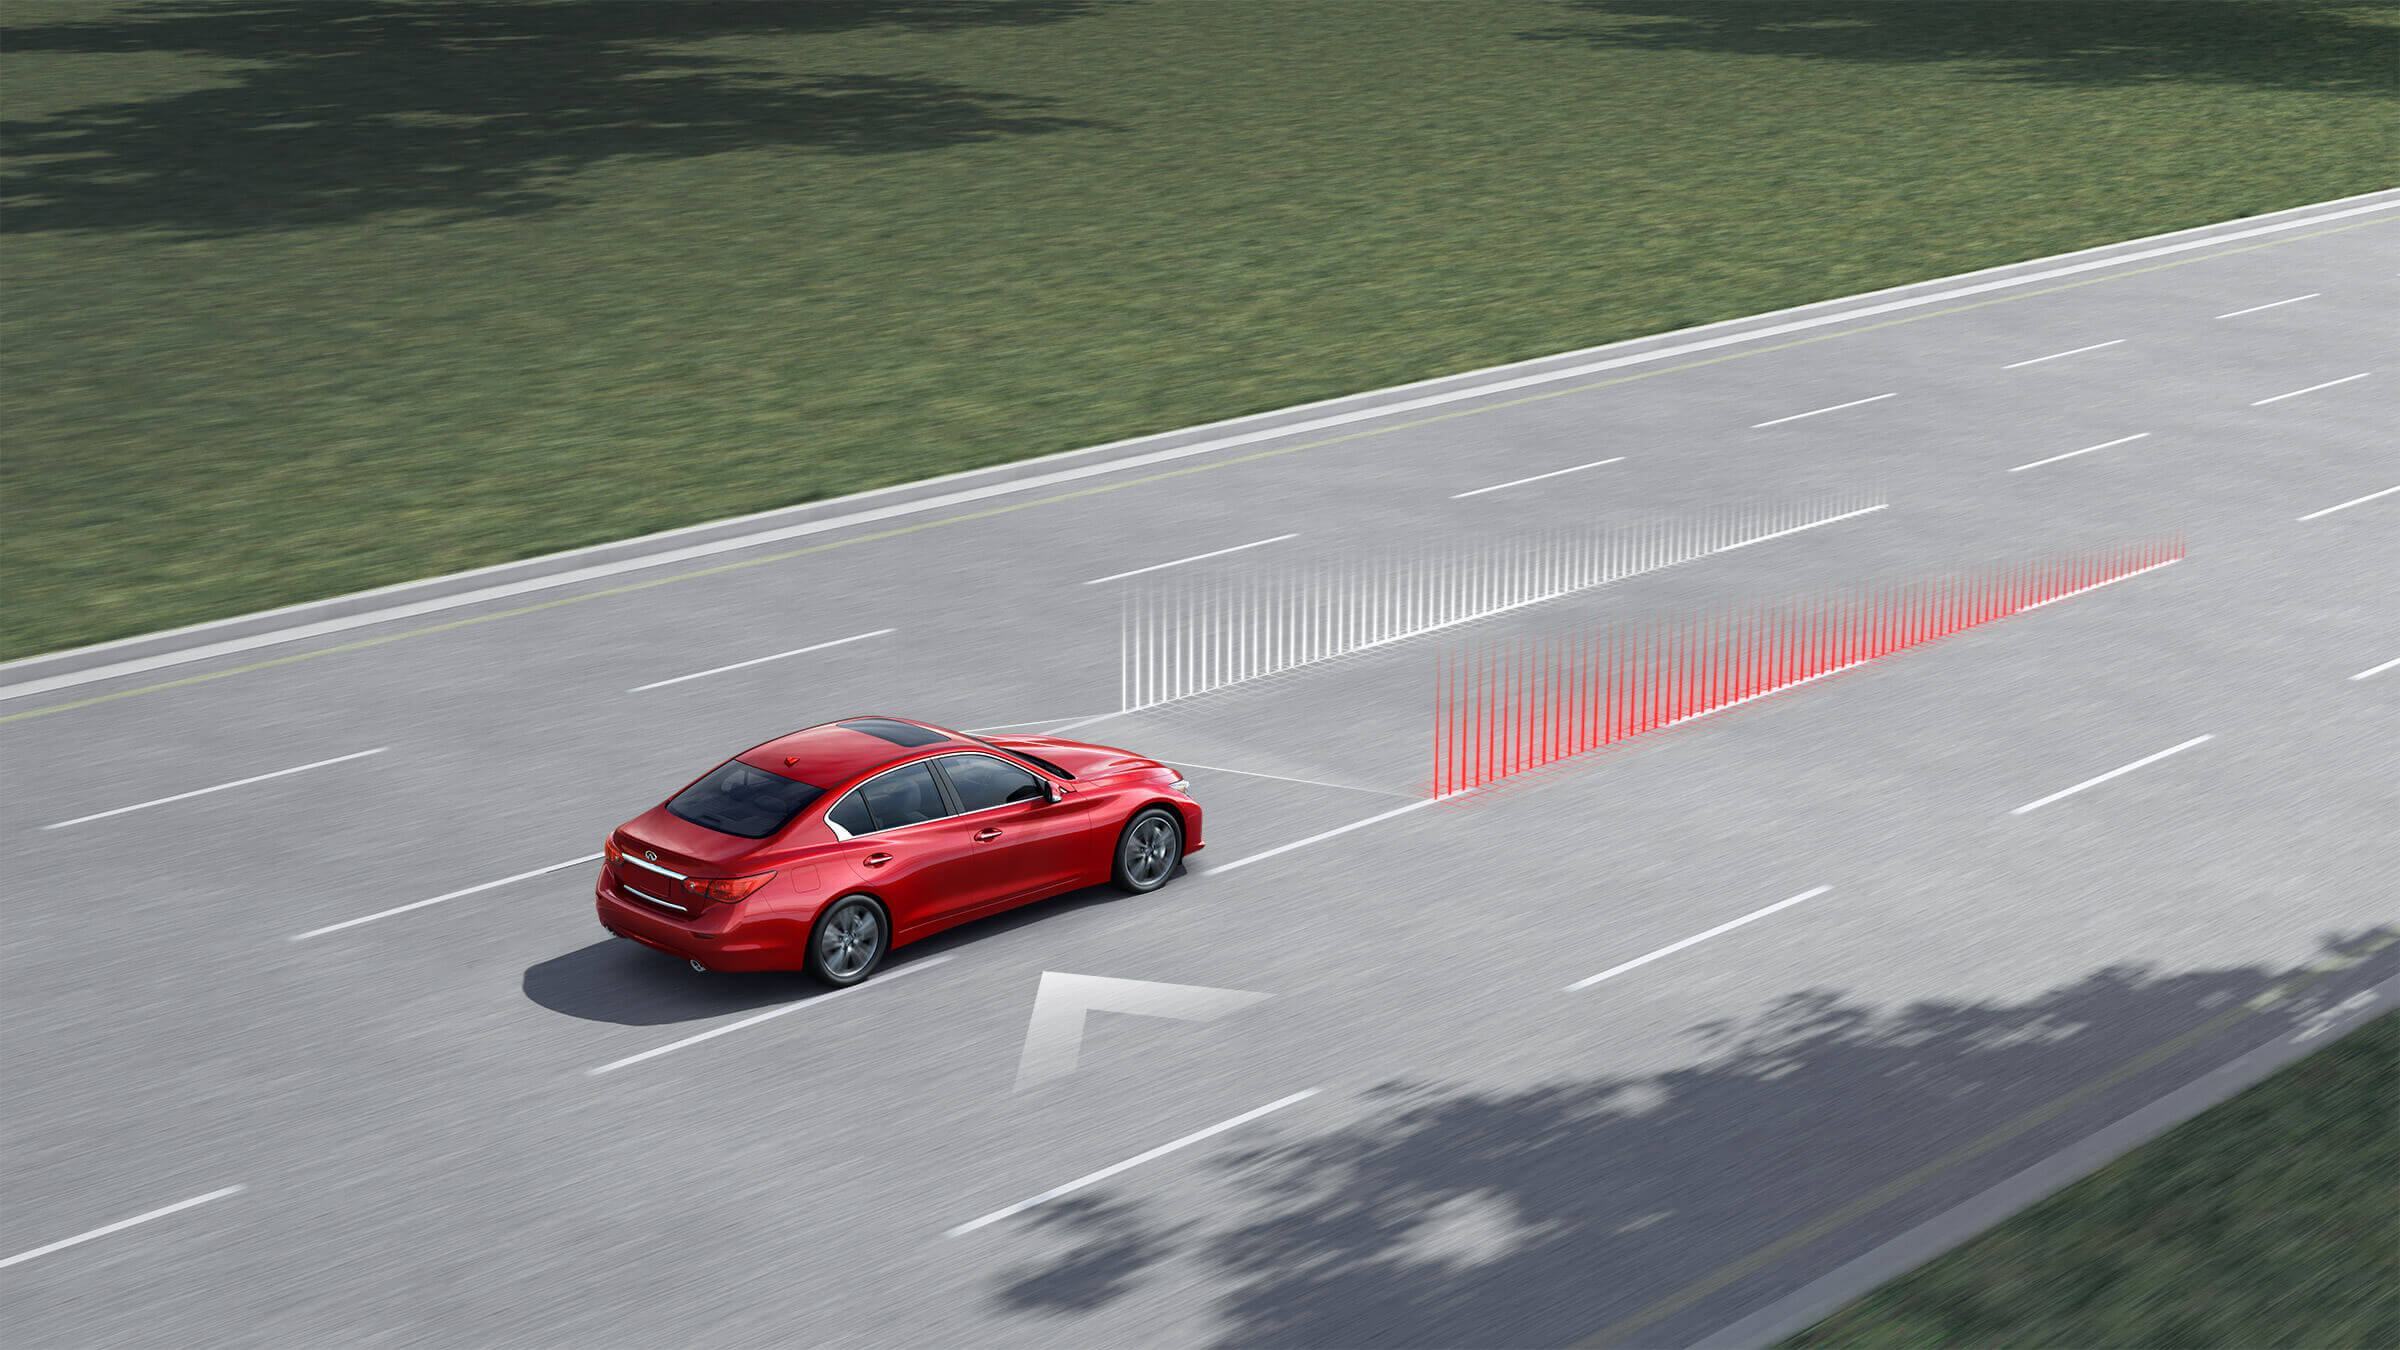 LANE DEPARTURE WARNING & PREVENTION¹